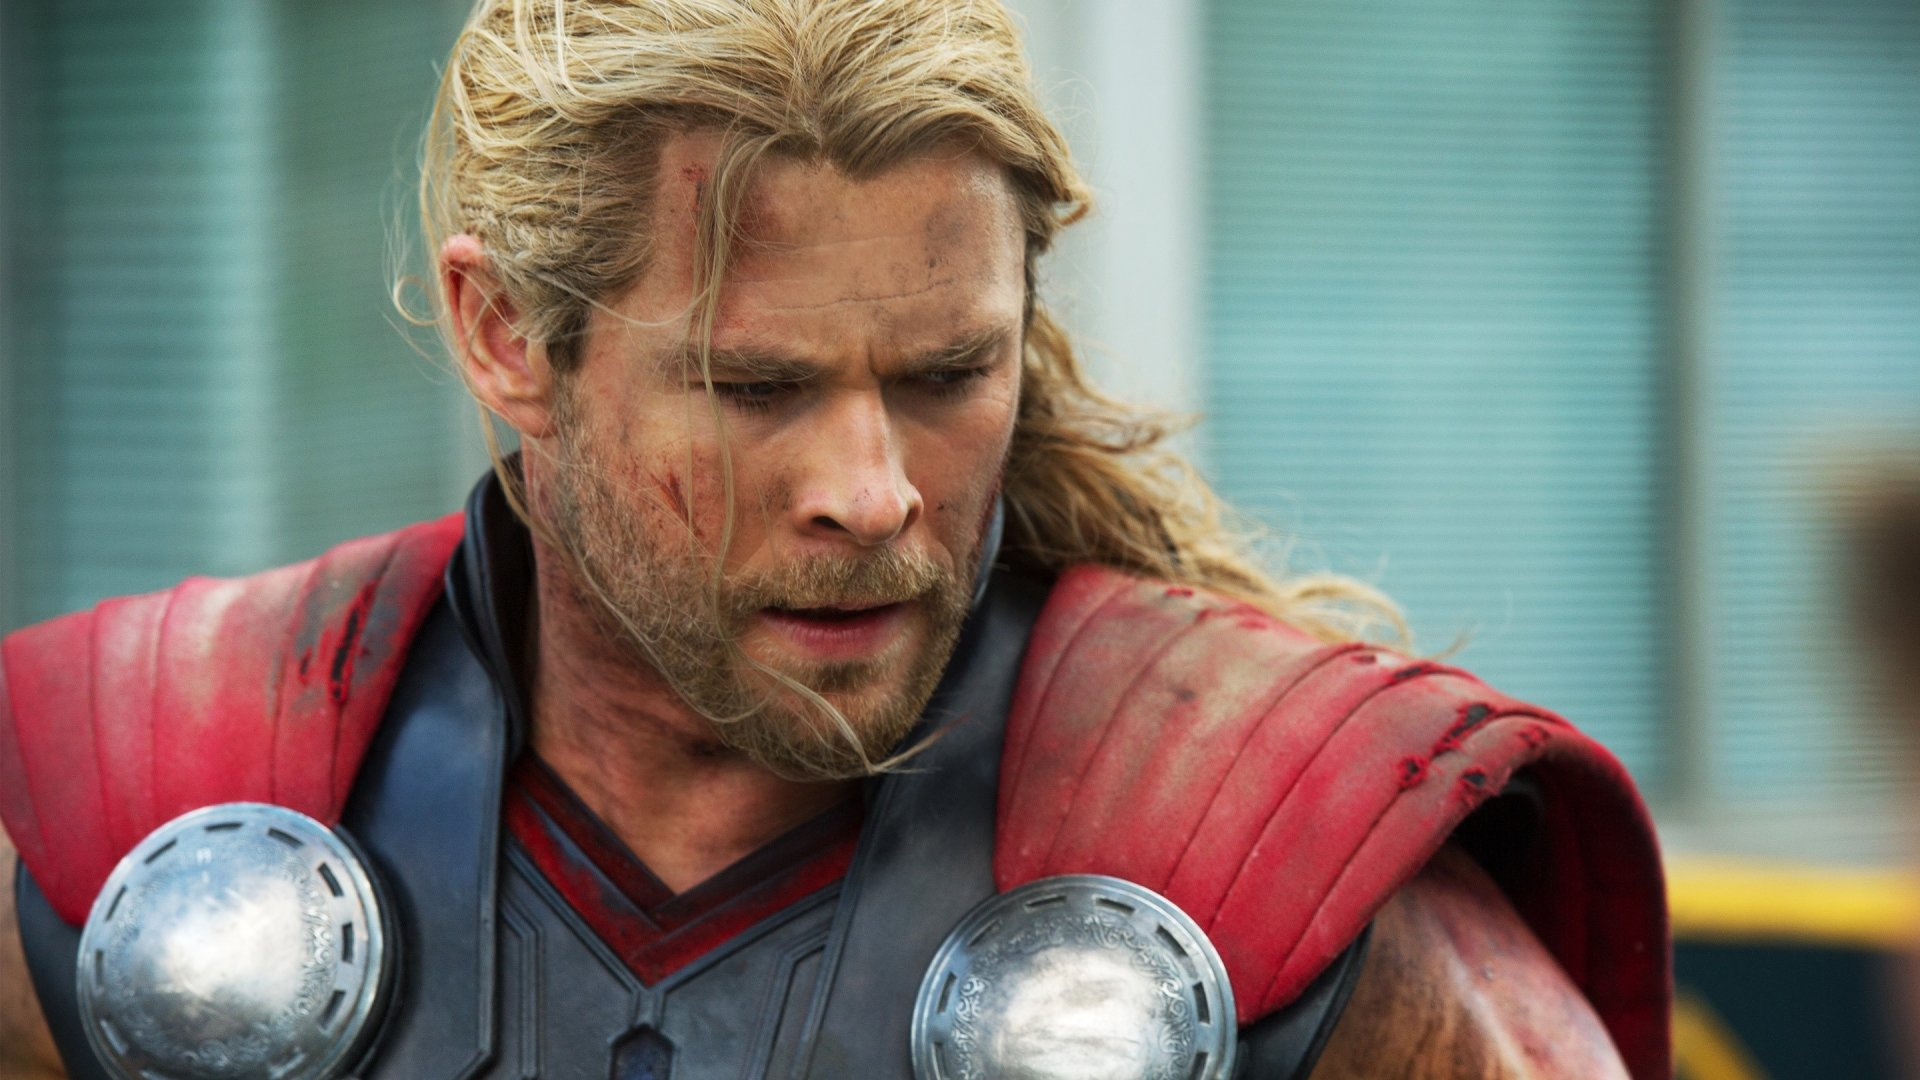 Wallpaper Chris Hemsworth Como Thor En Avengers Images